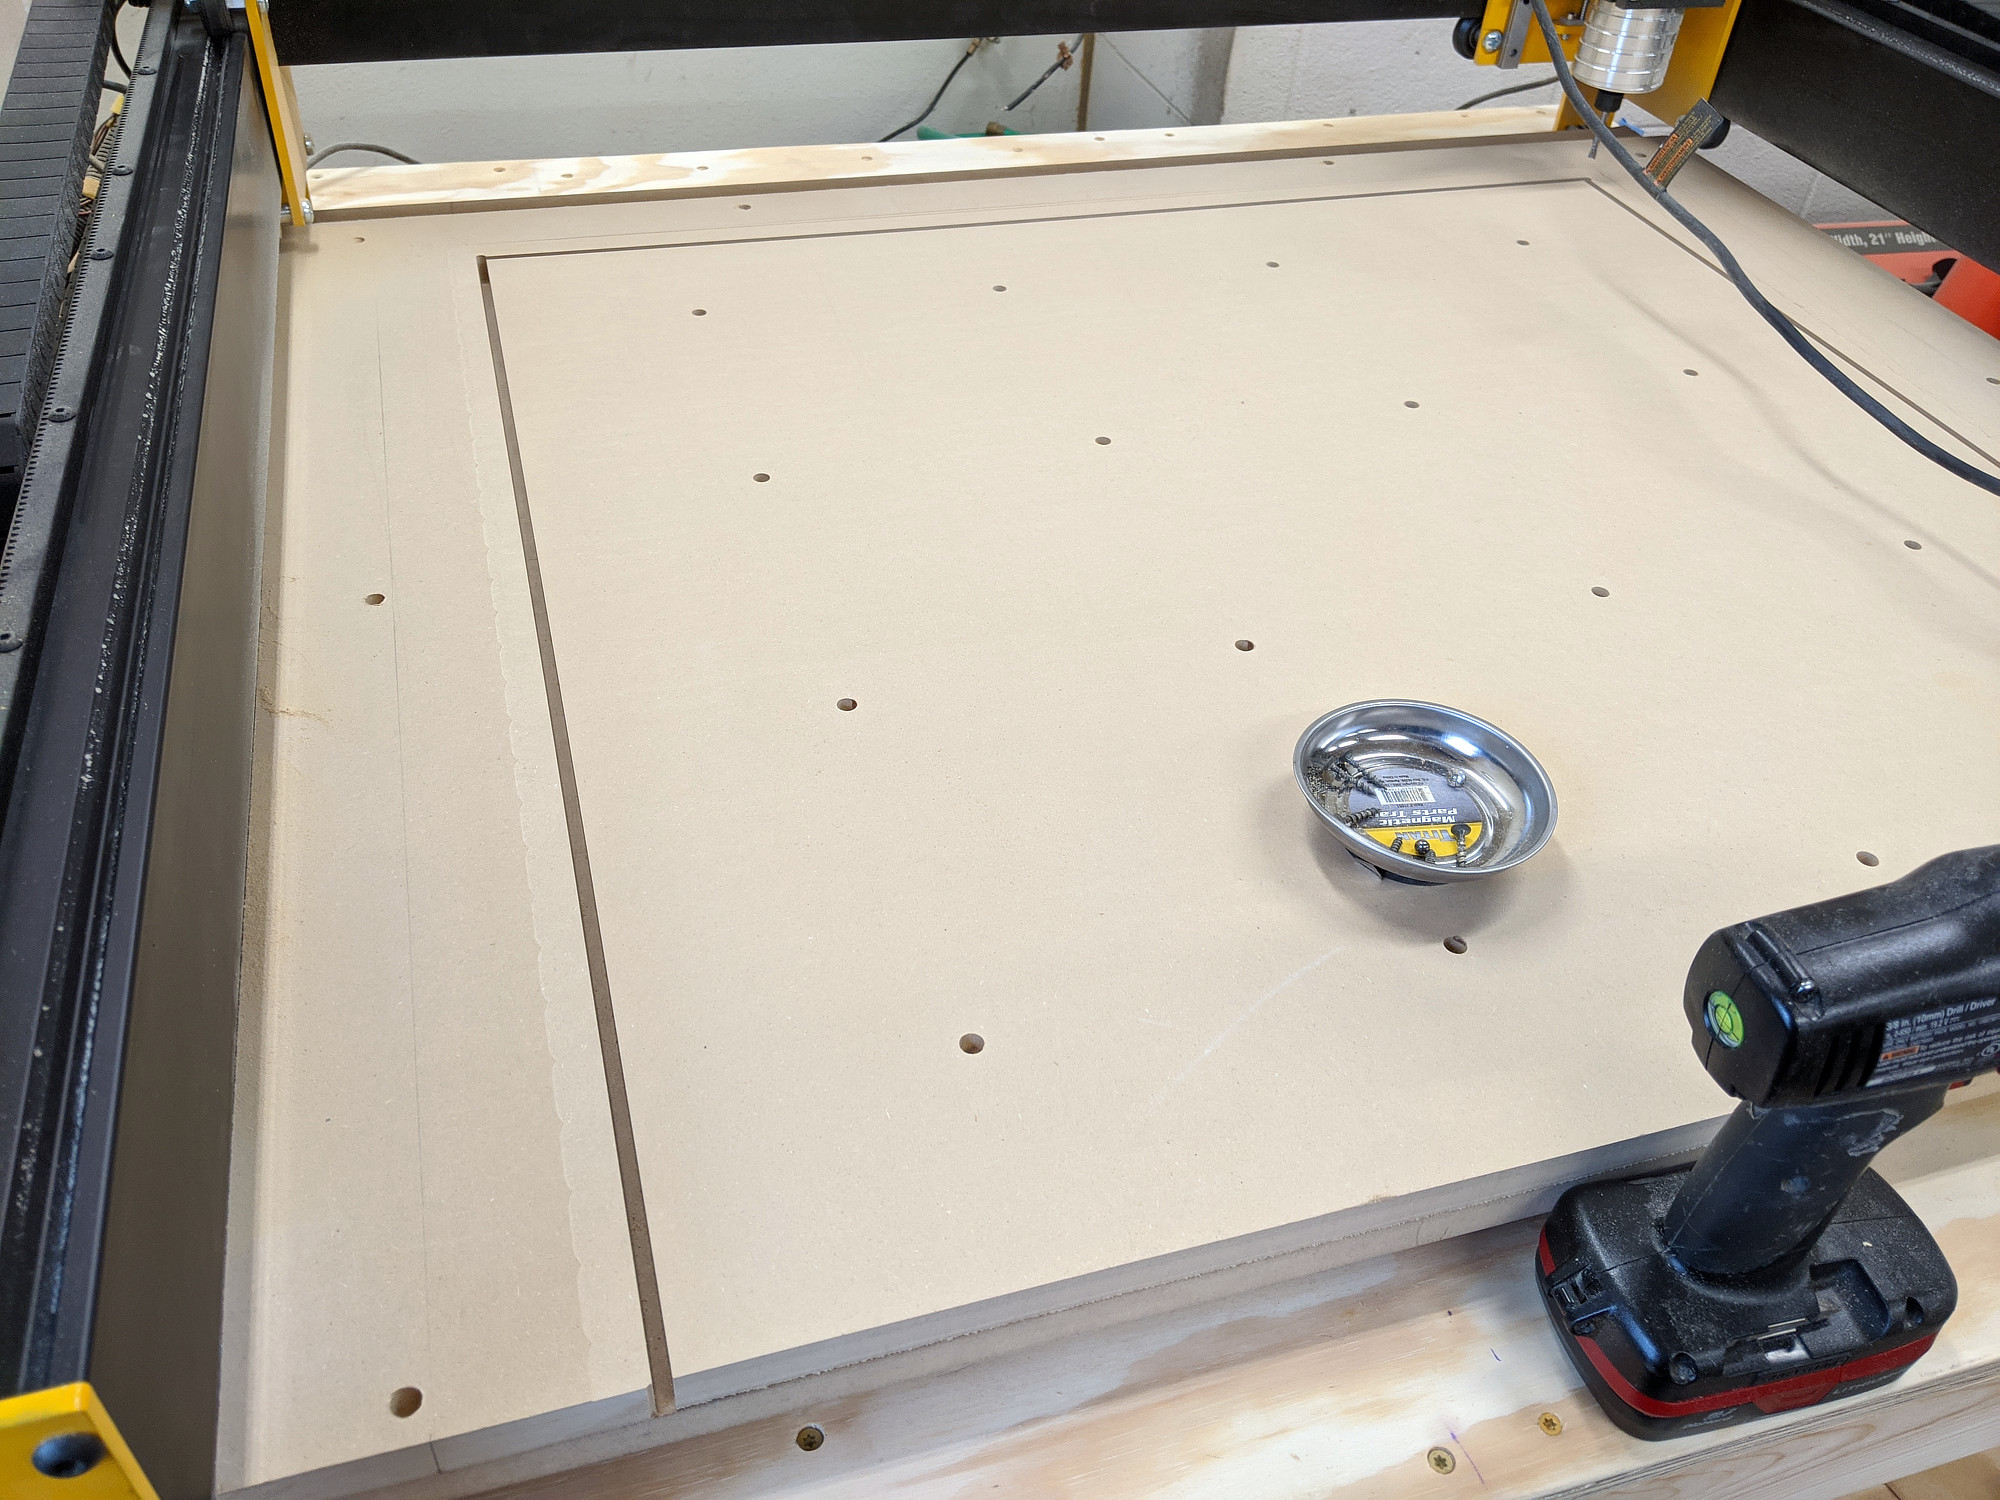 Wasteboard cut out, drilled and fastened